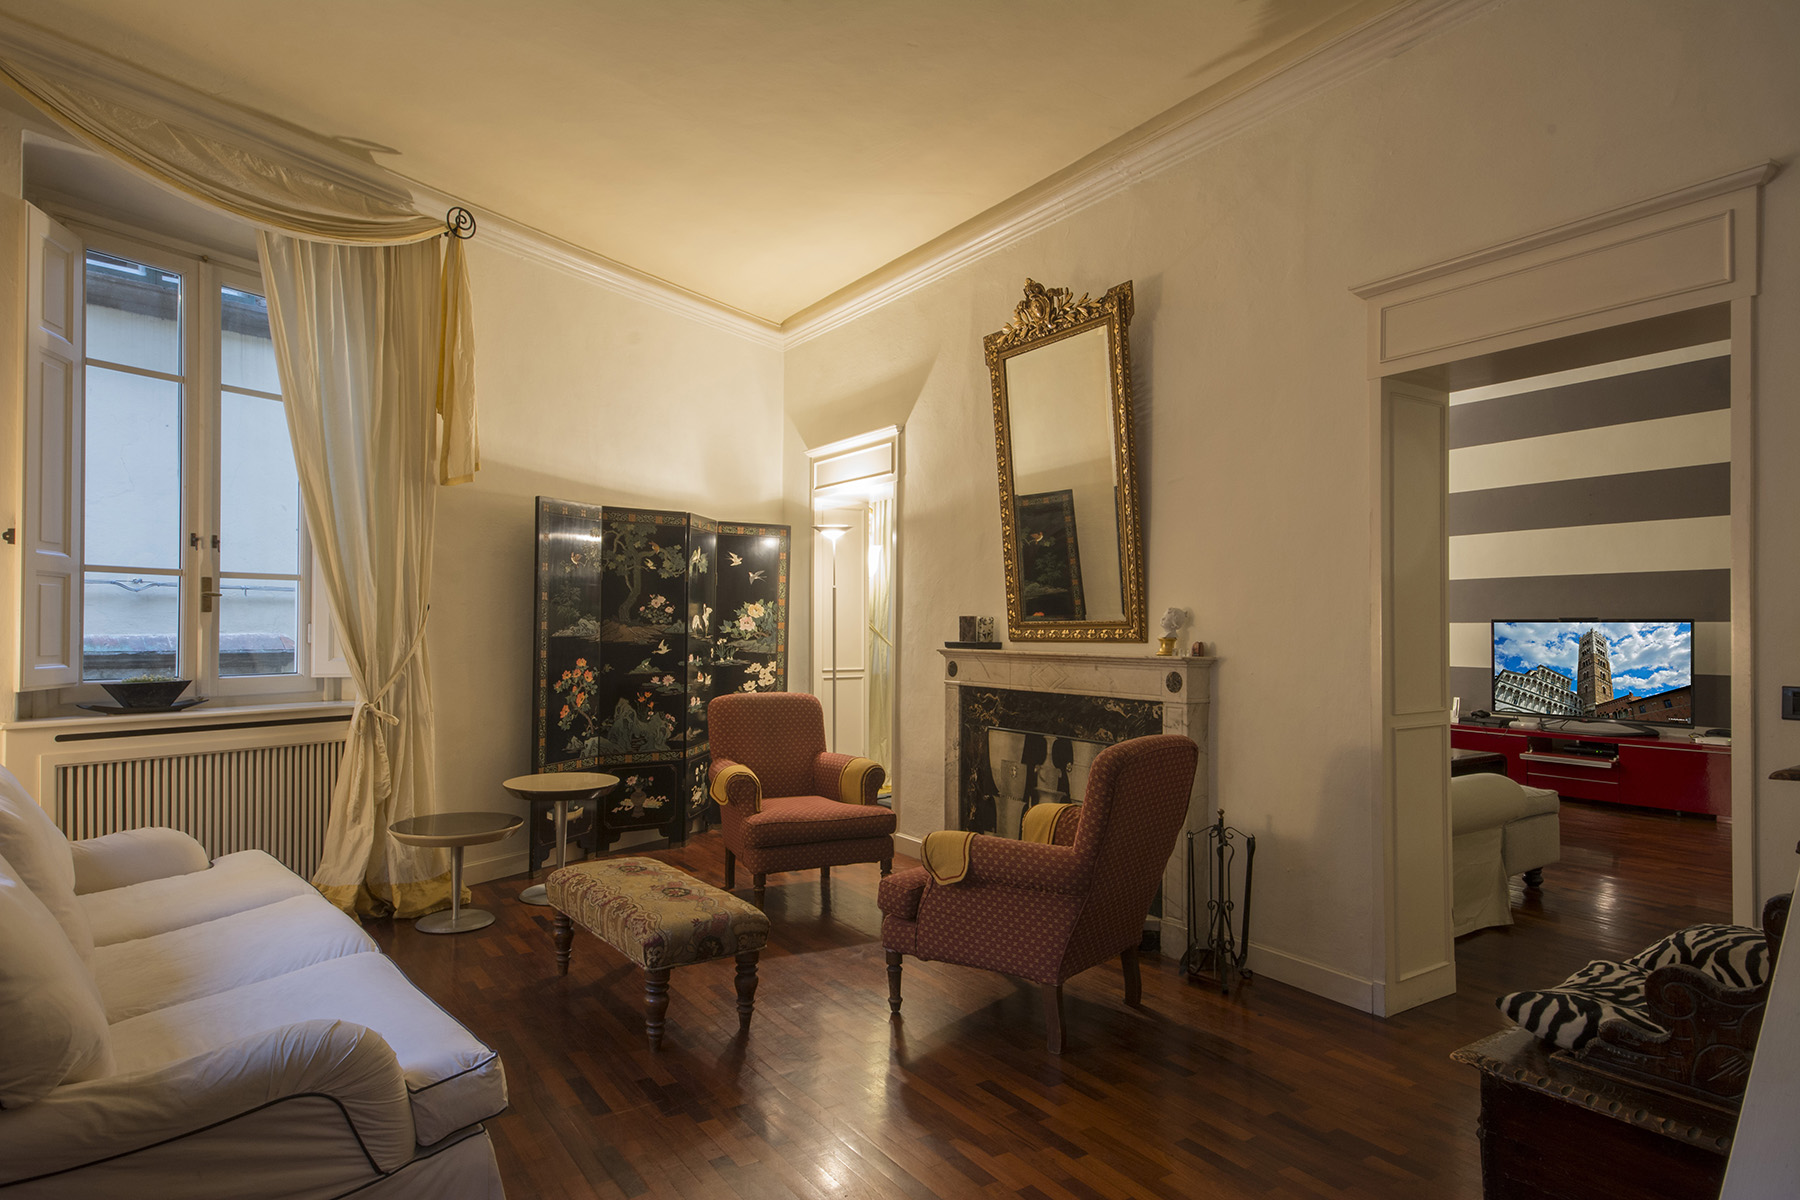 Lovely apartment in the historical center of Lucca